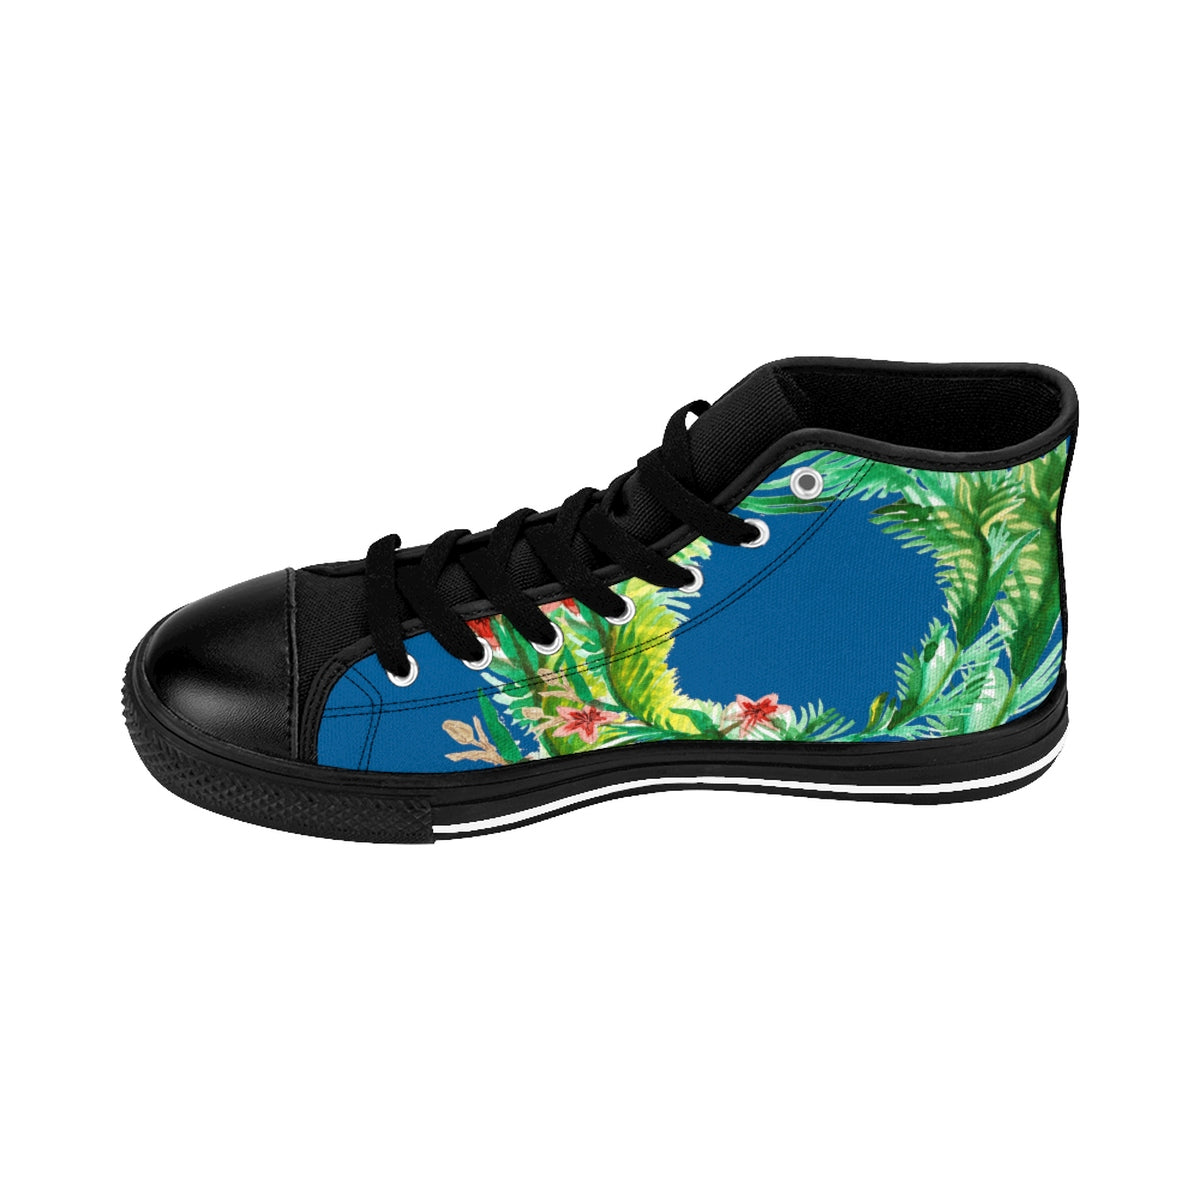 Blue Red Fall Themed Floral Print Designer Men's High-top Sneakers Running Tennis Shoes-Men's High Top Sneakers-Black-US 9-Heidi Kimura Art LLC Blue Floral Men's Sneakers, Blue Red Fall-Inspired Floral Print Designer Men's High-top Sneakers Running Tennis Shoes, Floral High Tops, Mens Floral Shoes, Hawaiian Floral Print Sneakers  (US Size: 6-14)